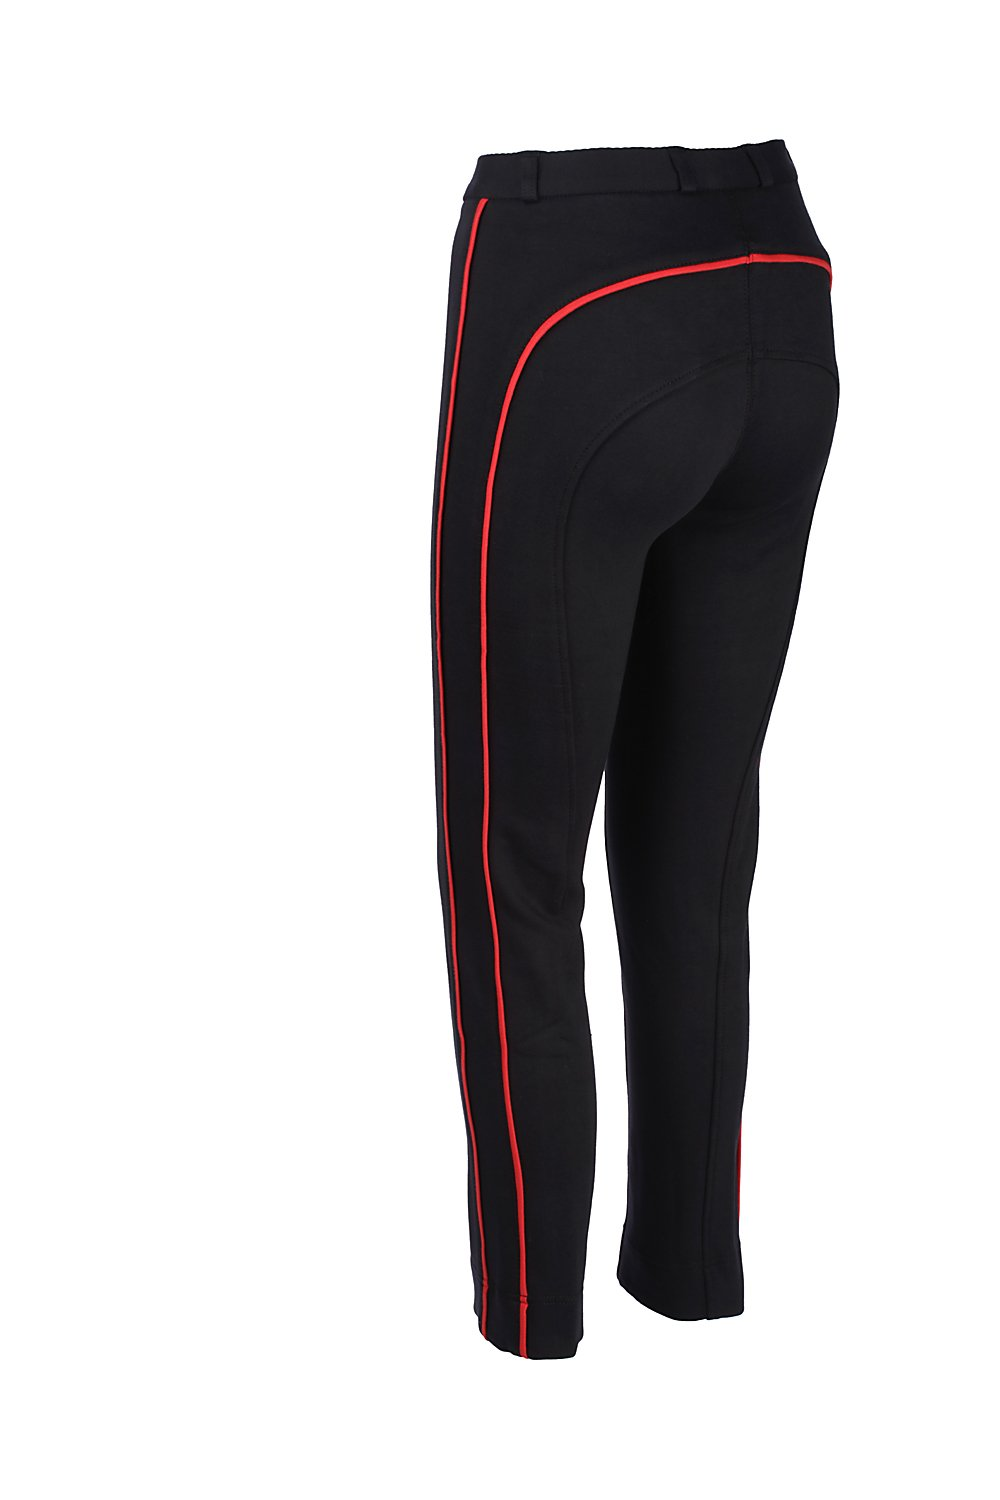 Discount Pet Accessories HORSE RIDING LADIES SOFT STRETCHY JODPHURS//JODHPURS JODS BLACK WITH RED PIPING